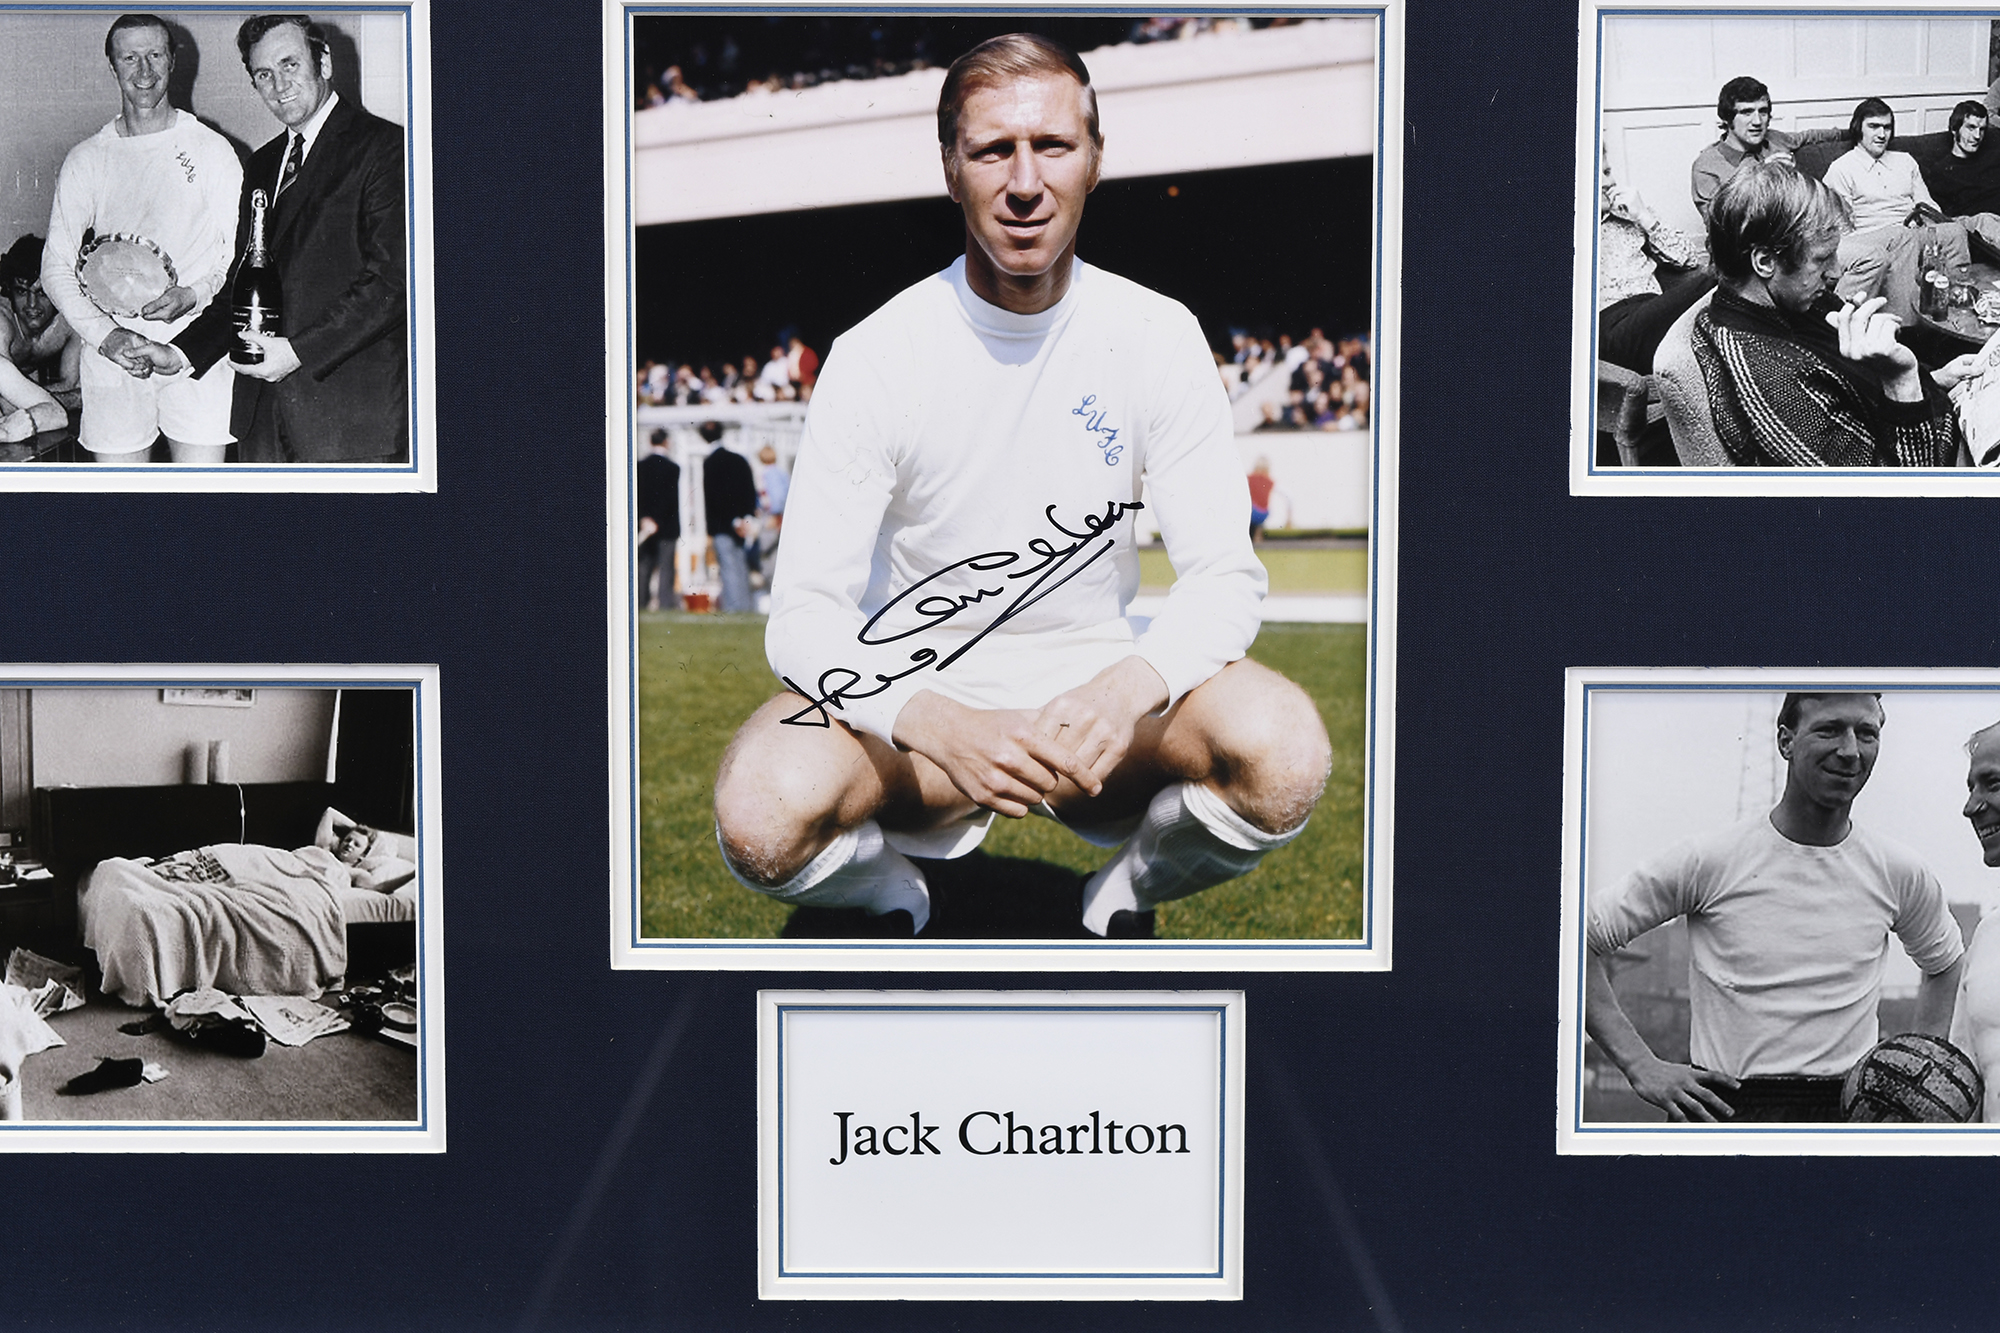 Jack Charlton Framed Presentation - Image 3 of 6